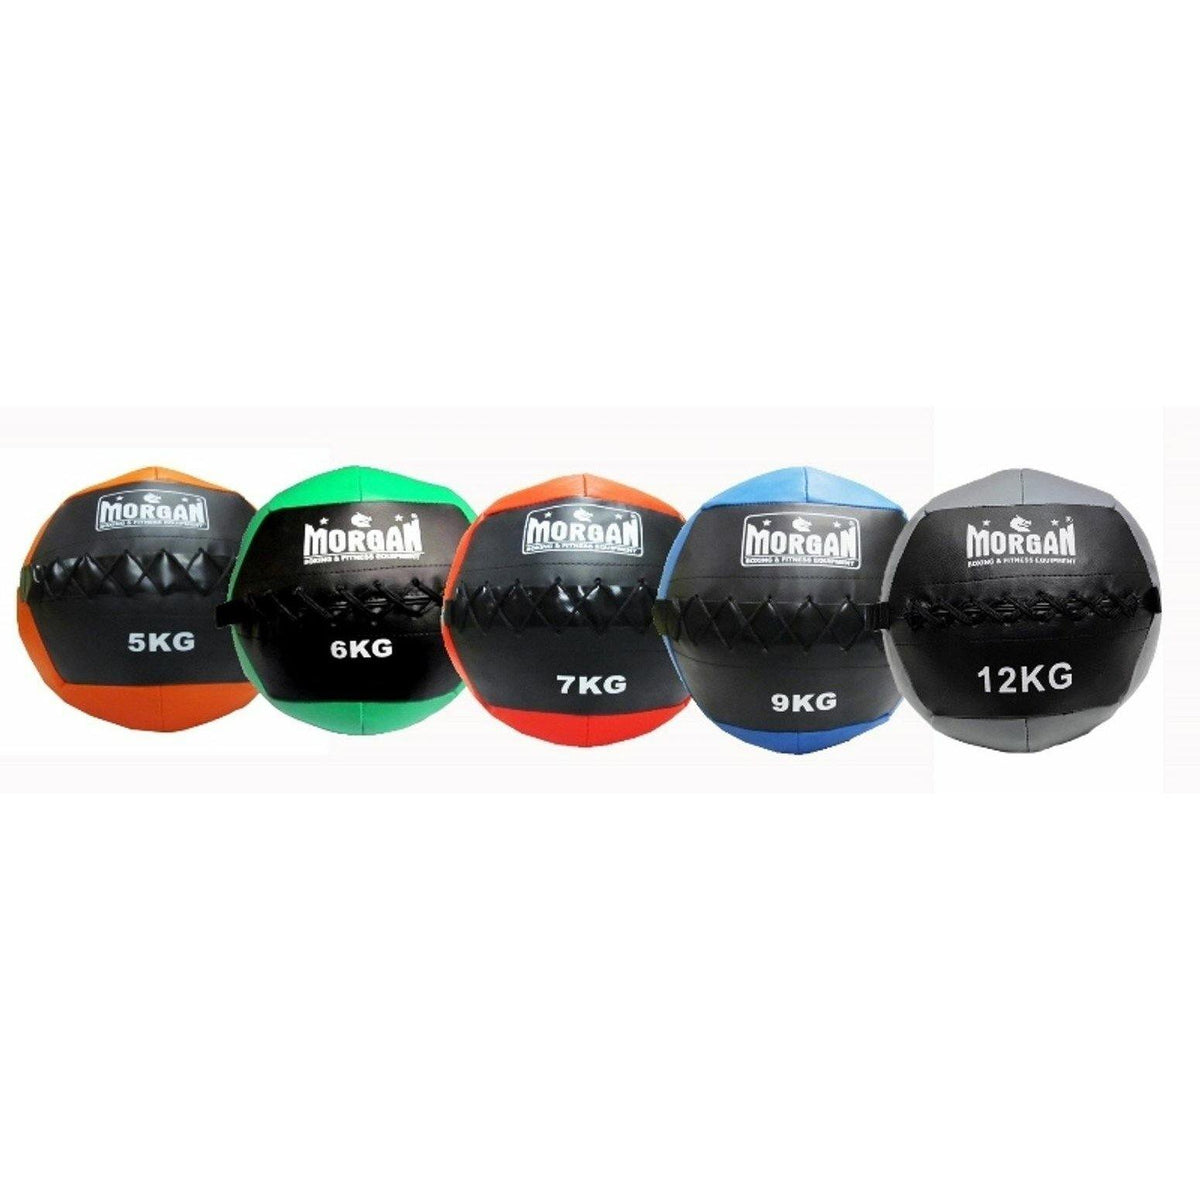 Morgan Cross Functional Fitness Wall Ball Set Of 5 (5 + 6 + 7 + 9 + 12 KG)